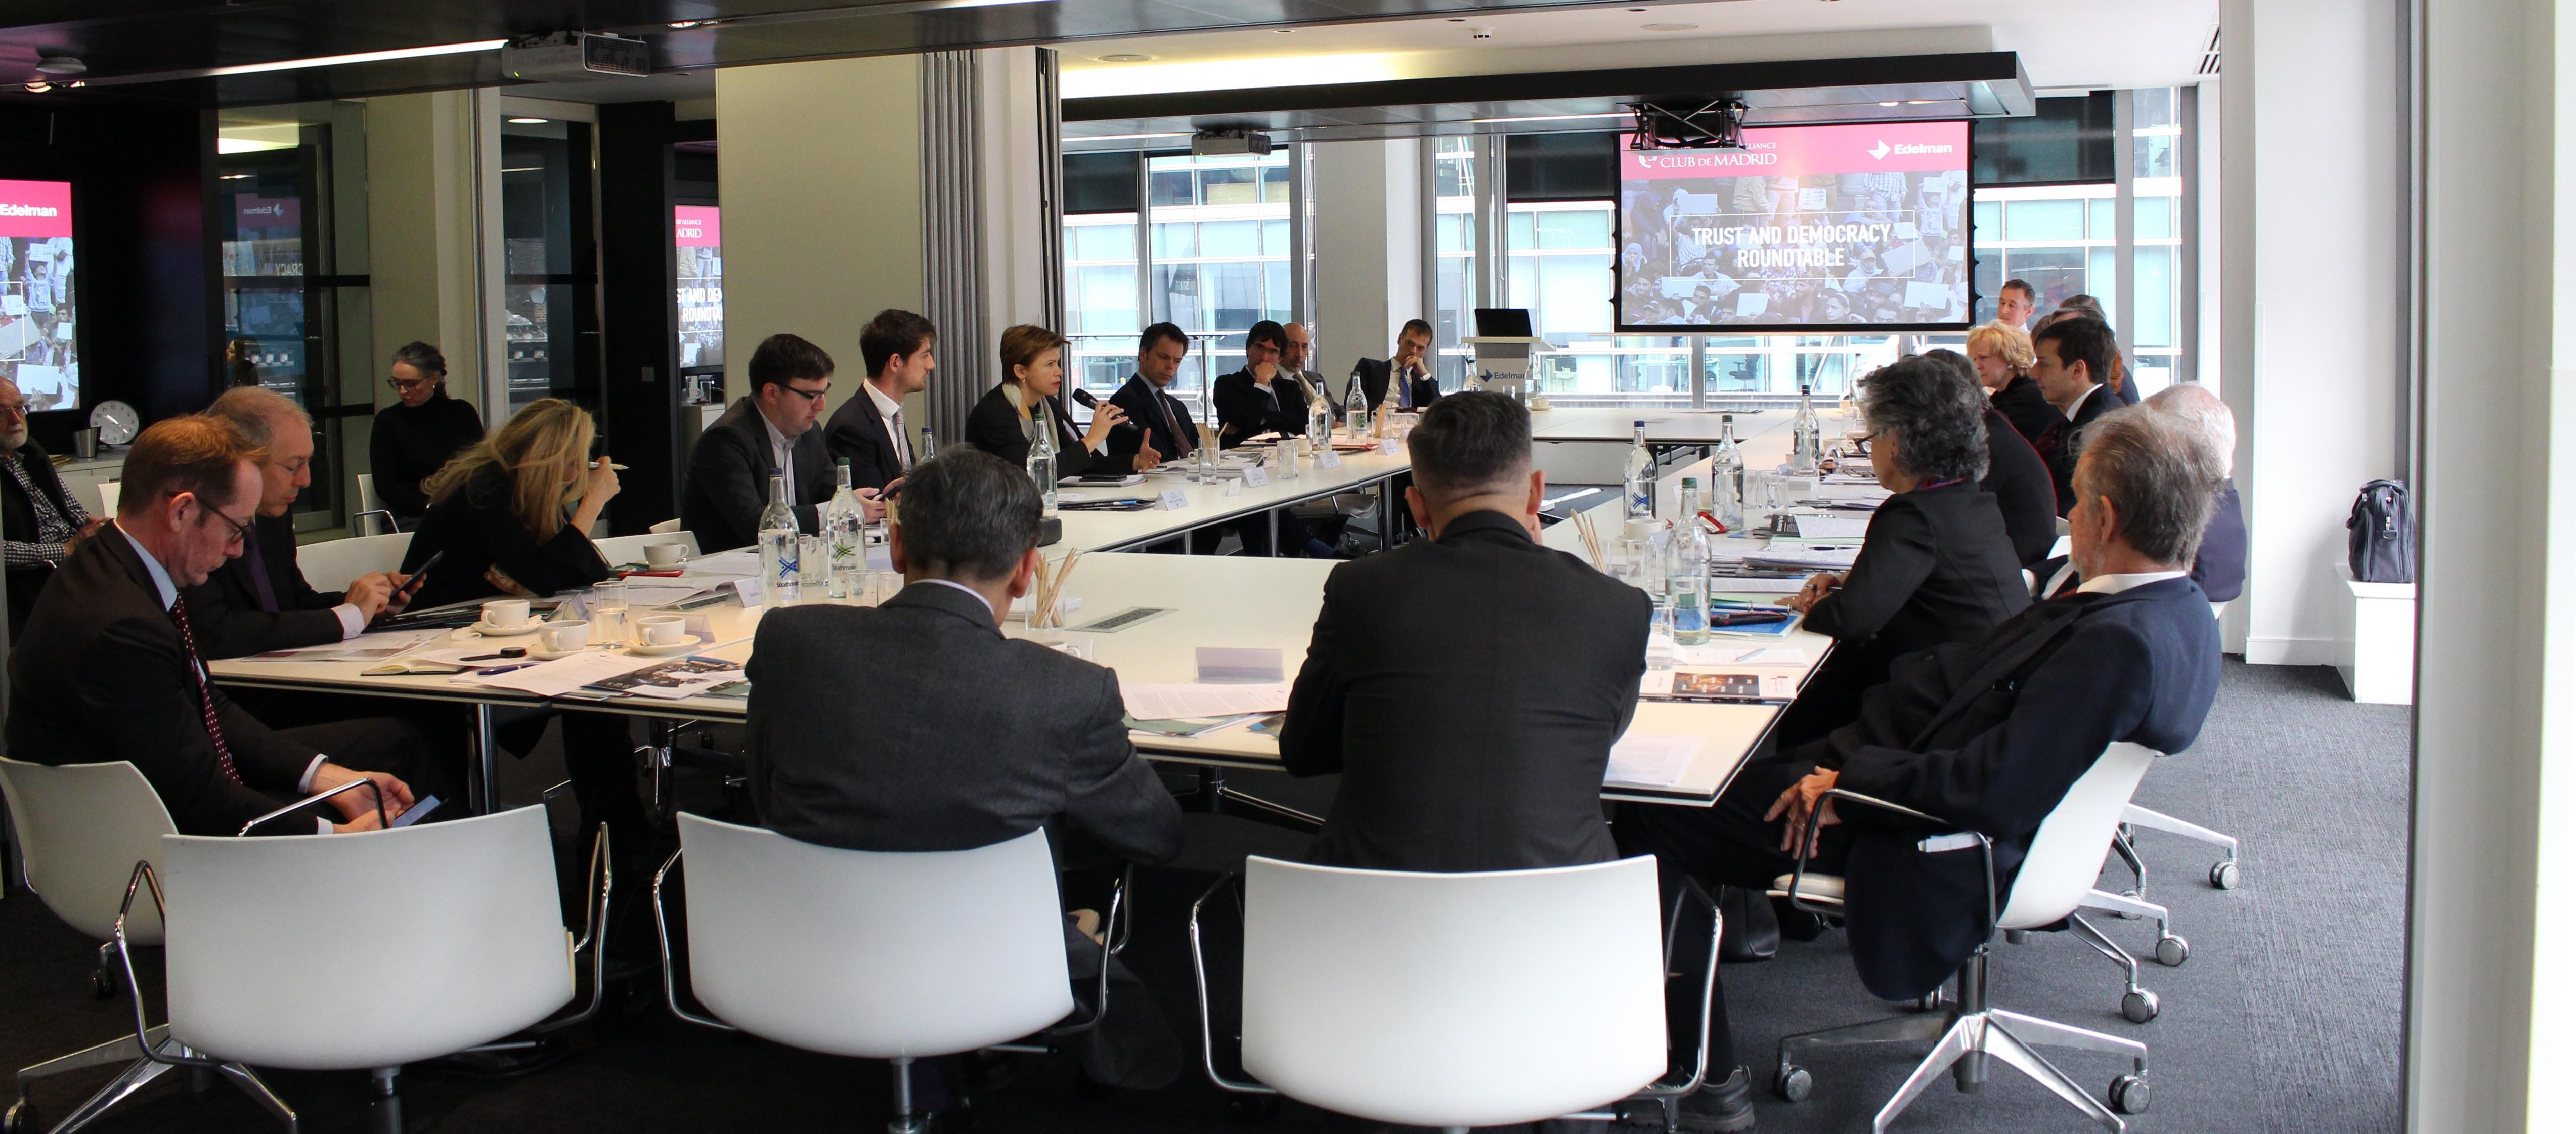 Club de Madrid discusses links between online information and declining trust in democratic institutions